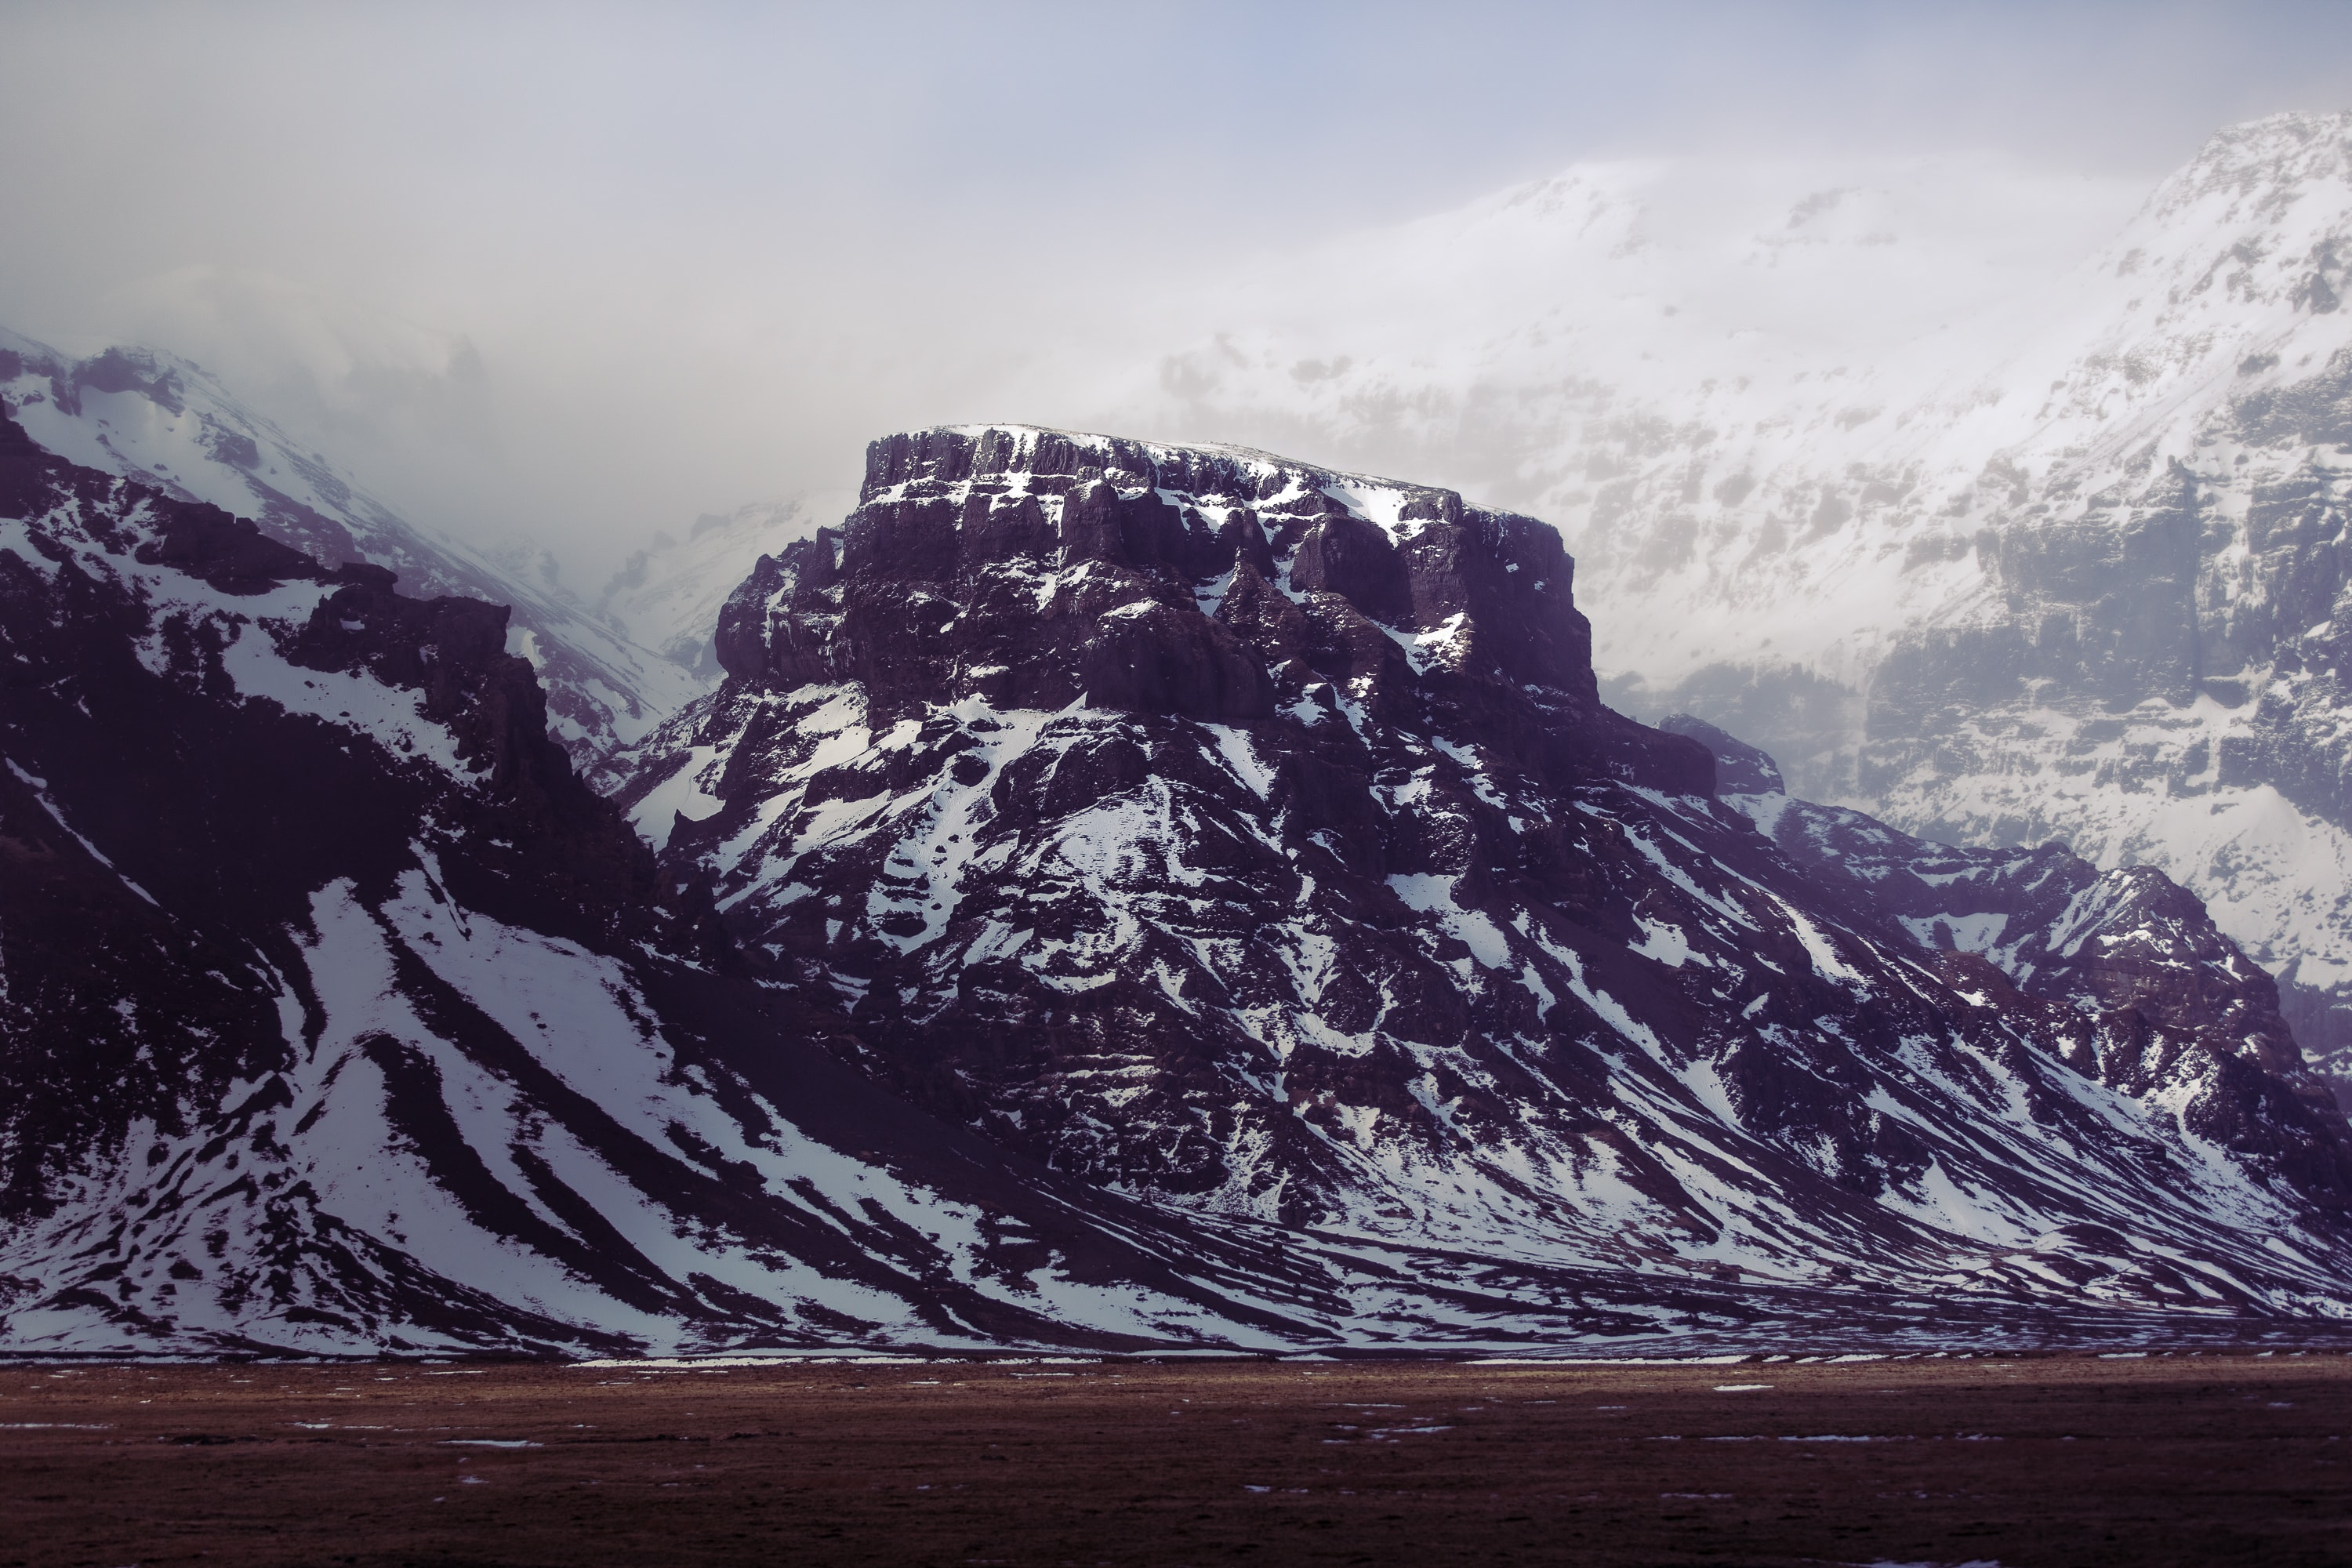 A flat mountain peak in the snow among other snowy mountain ridges